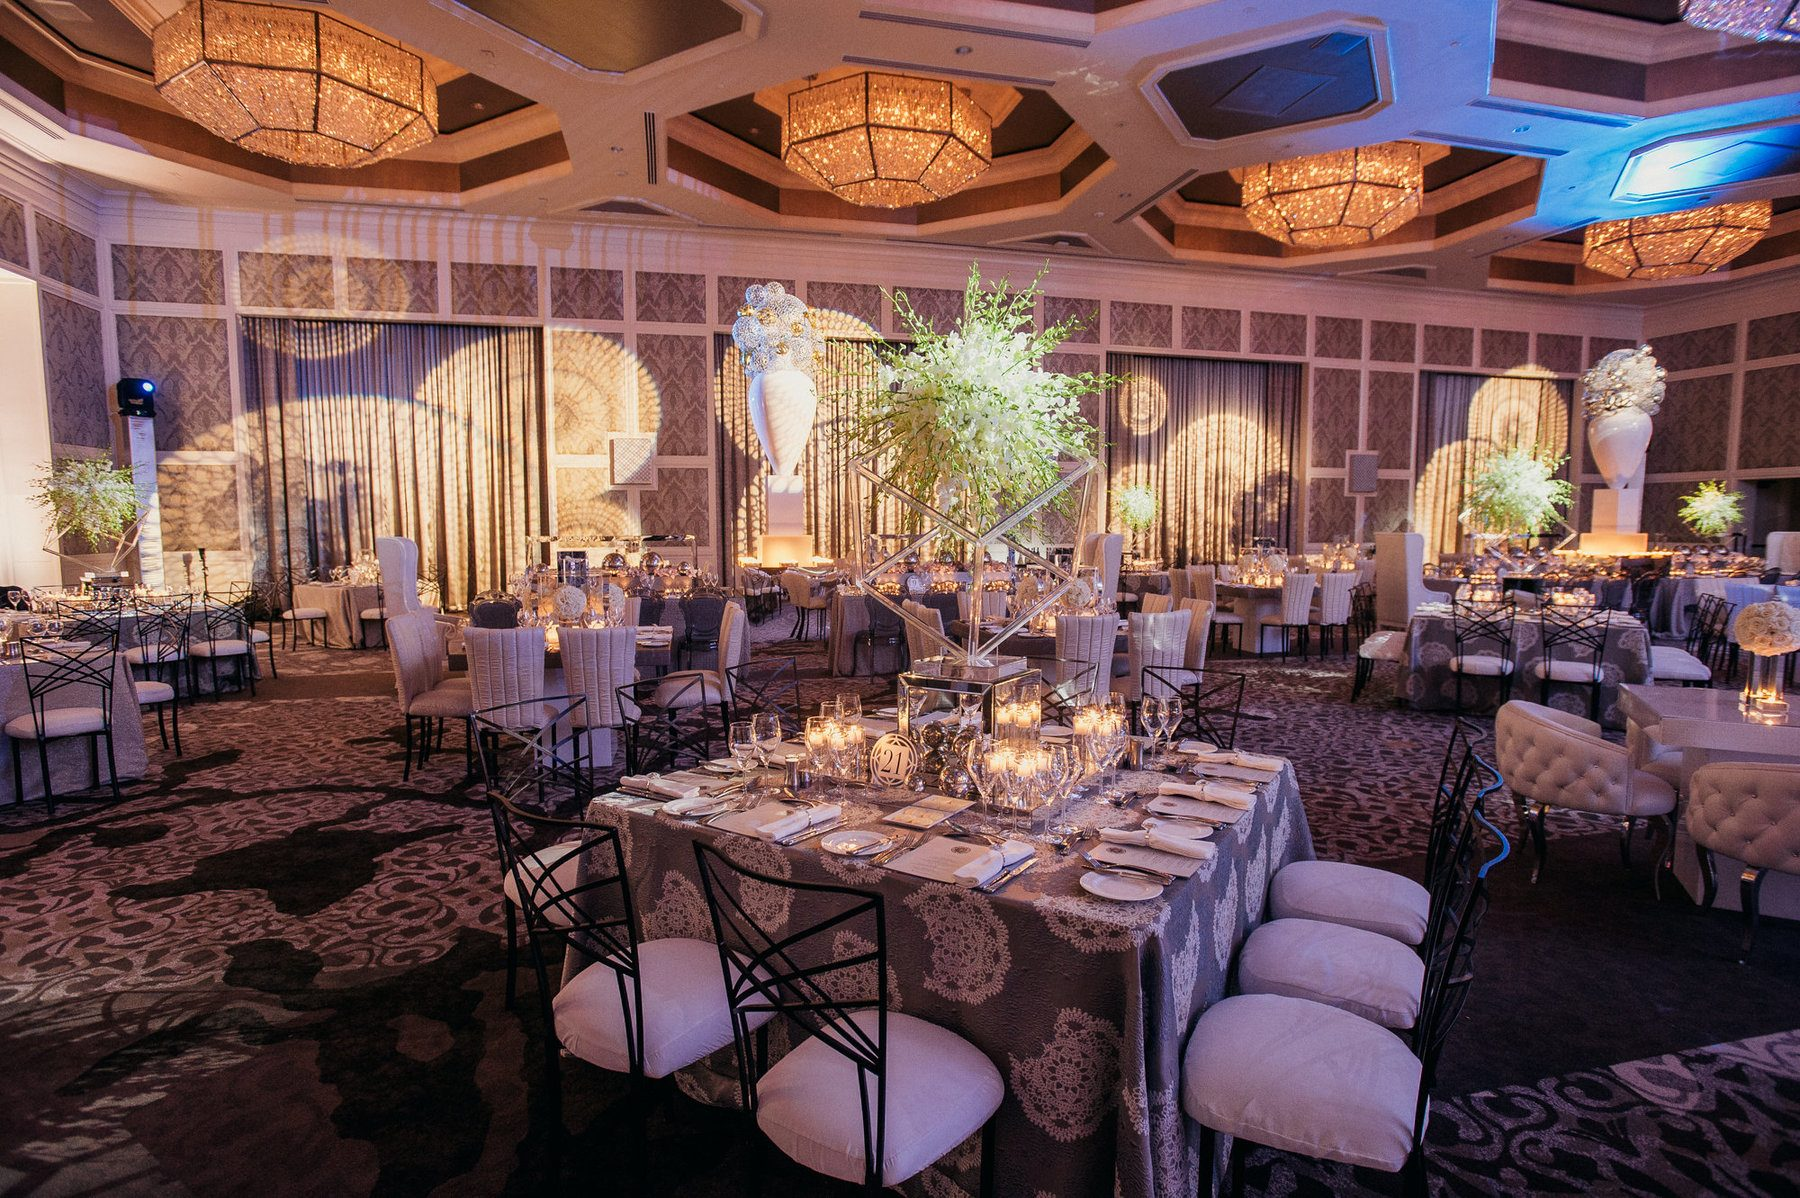 View More: http://engage.pass.us/engage15fourseasonsorlando